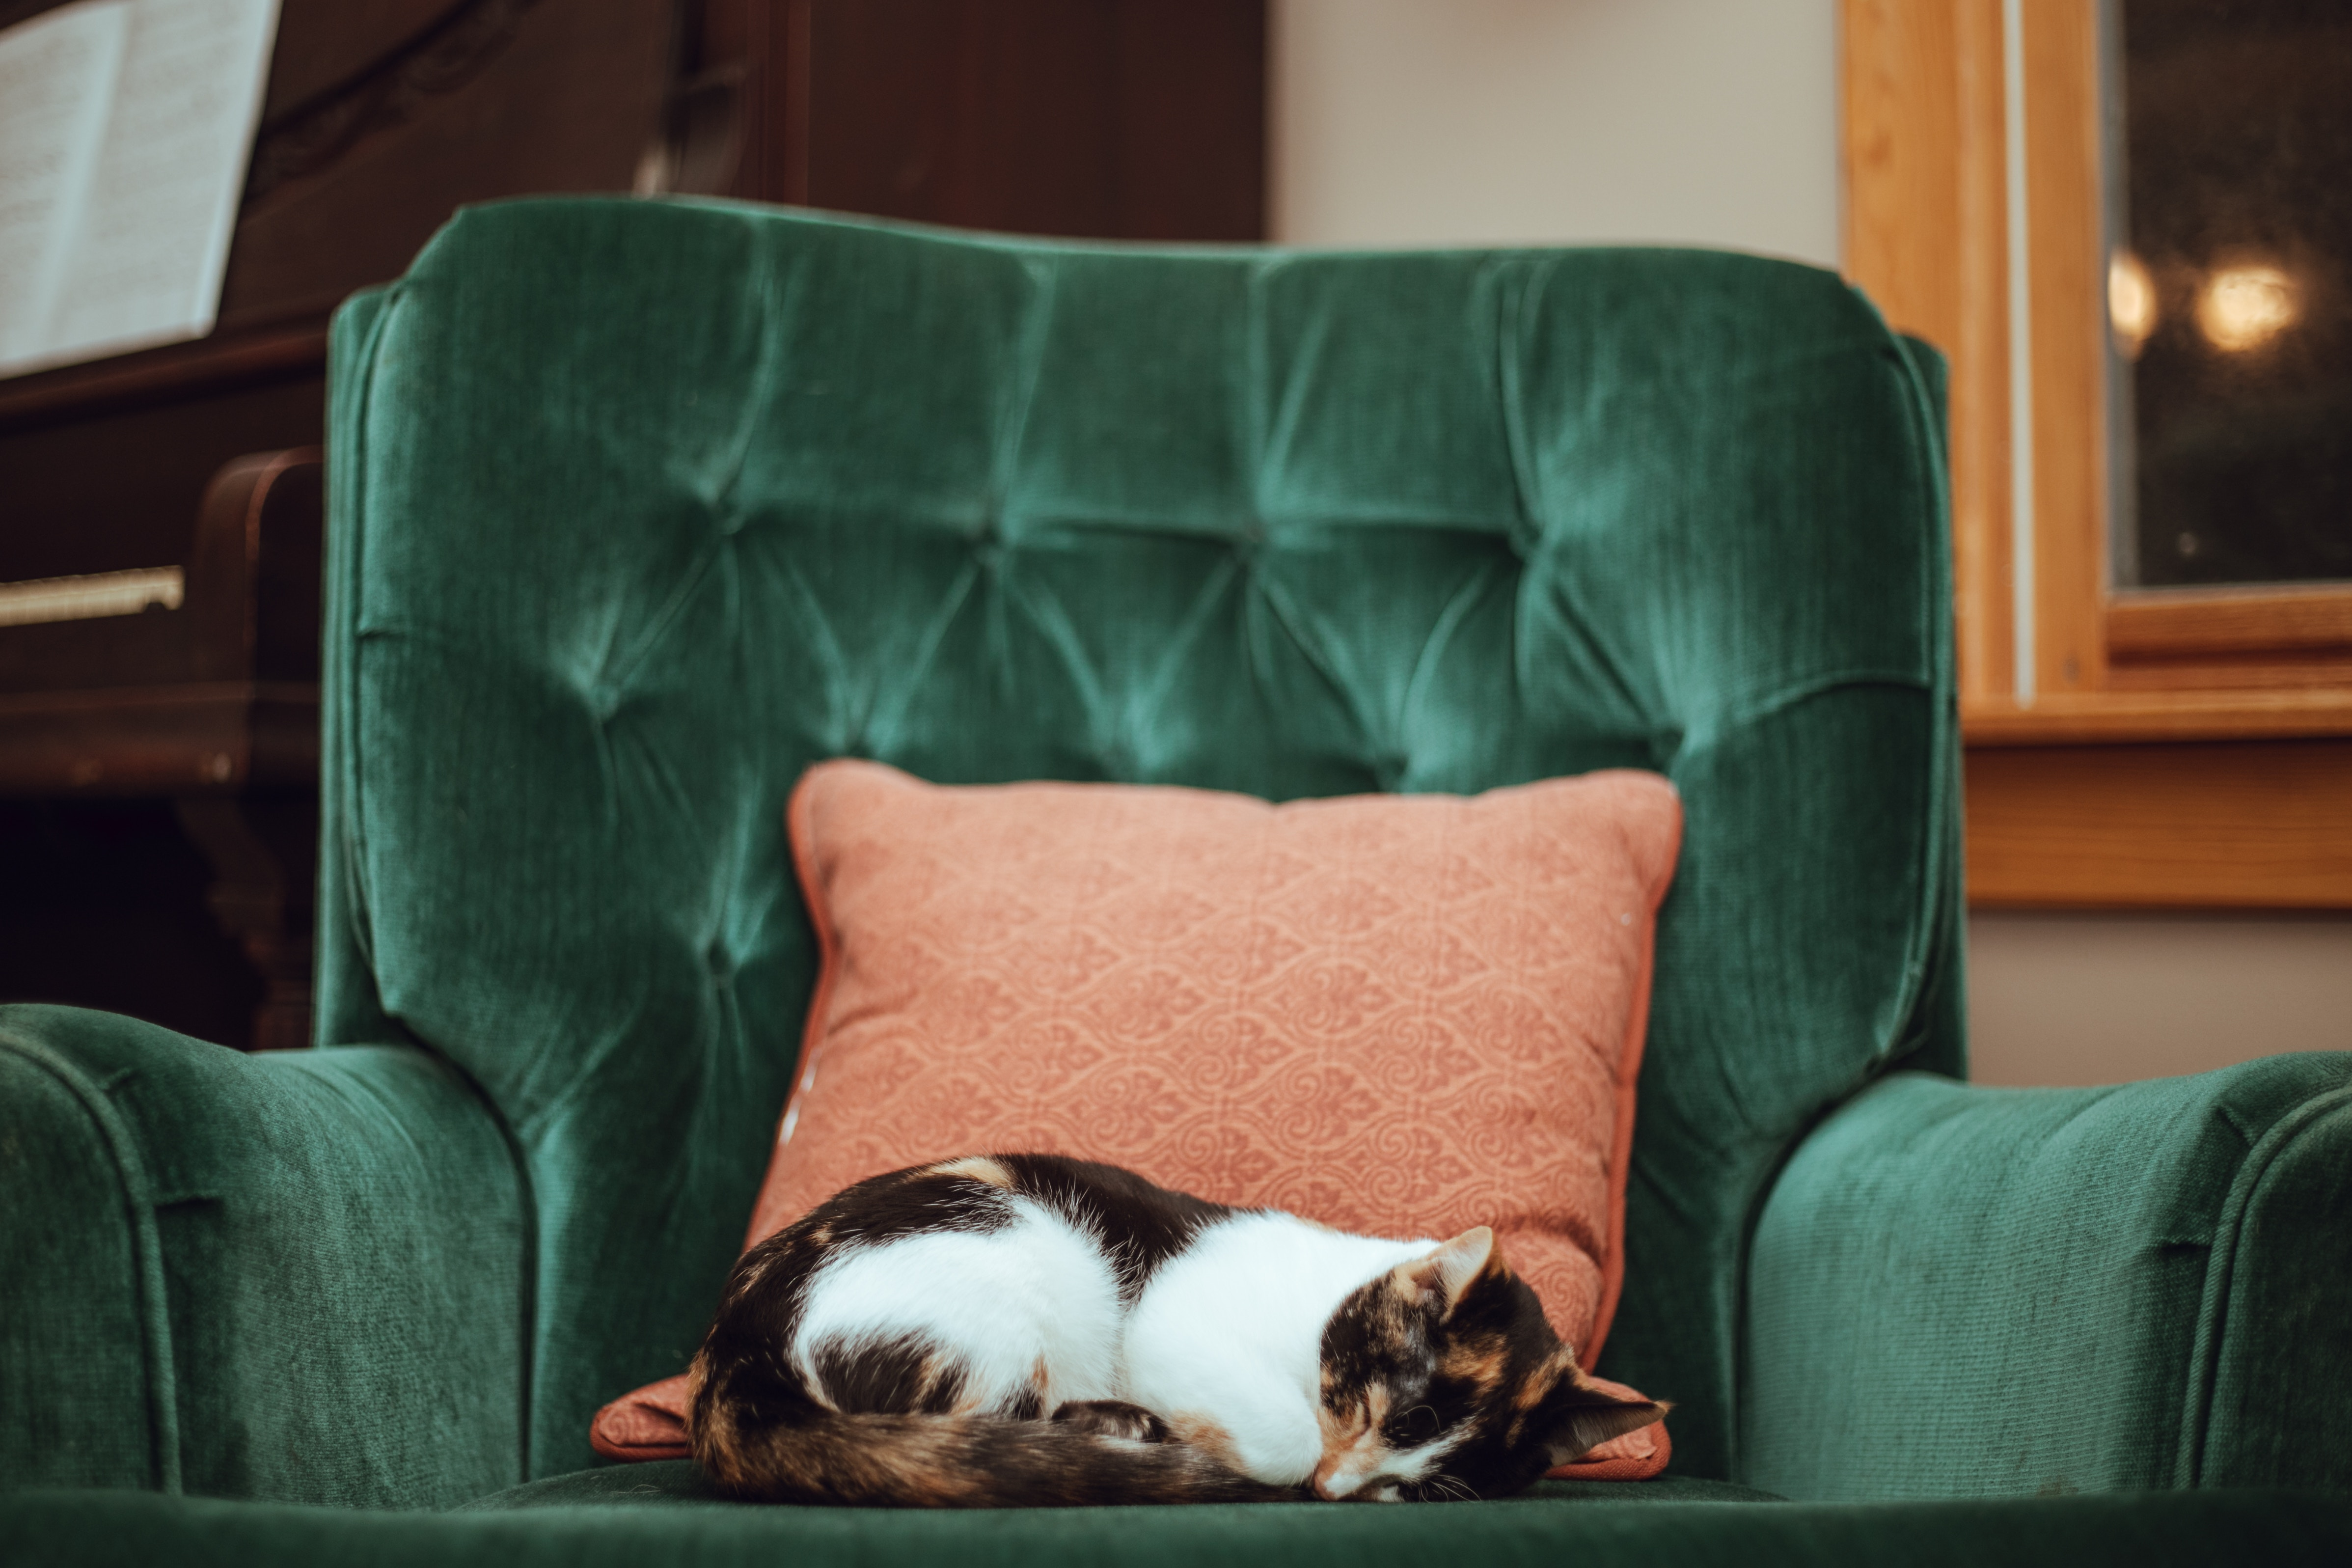 Is that your armchair or your cat's?